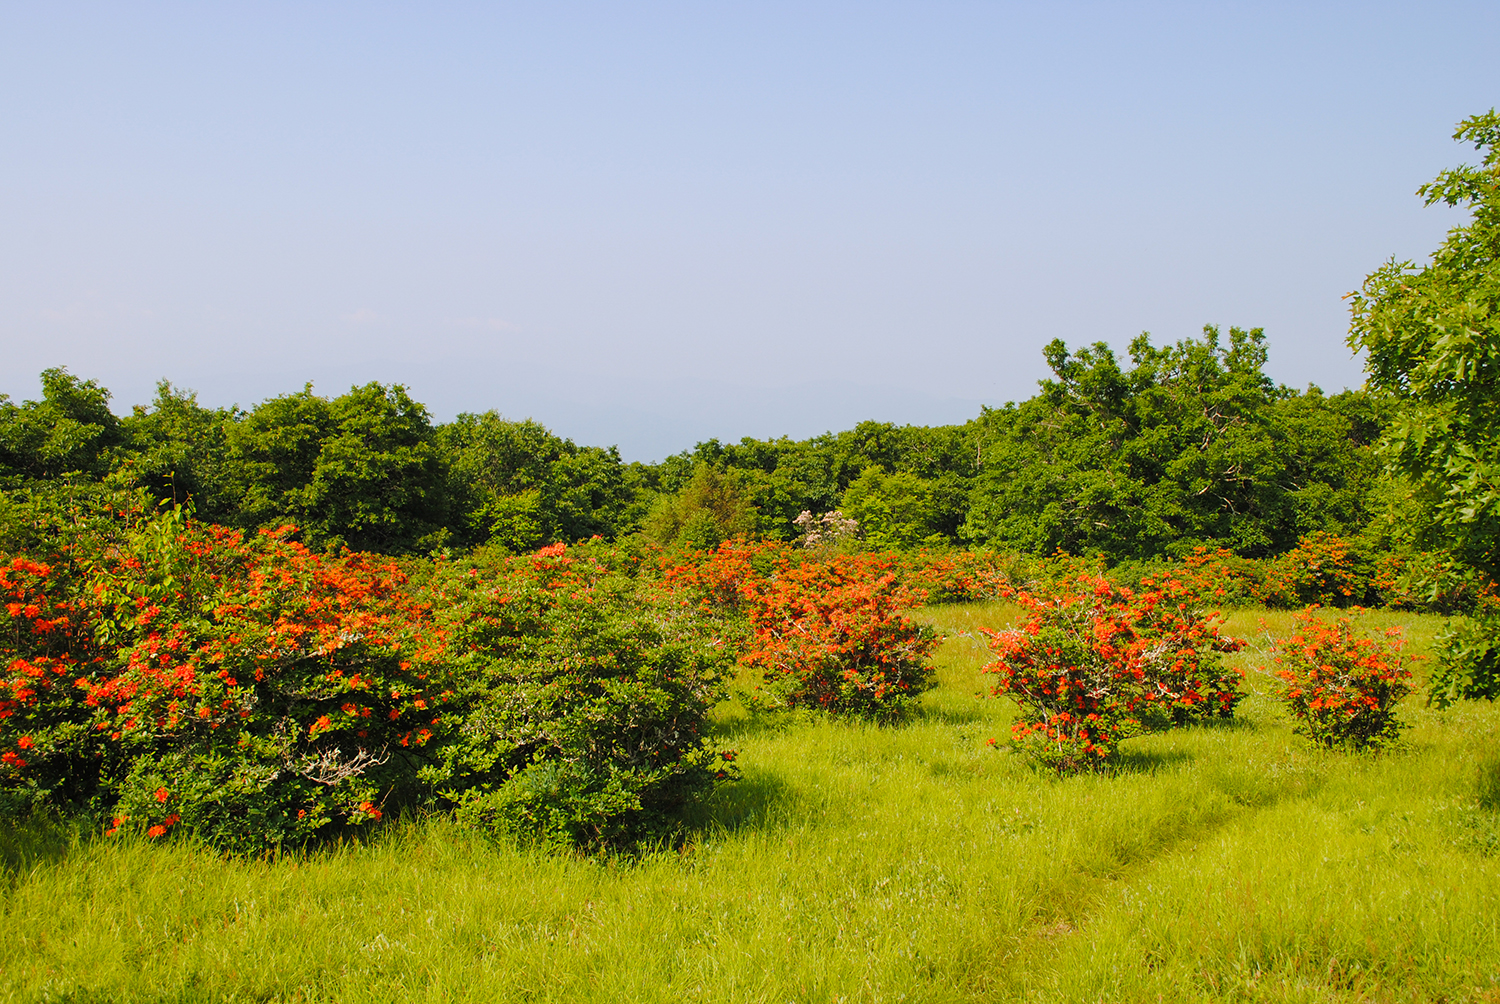 A narrow path leads through the grass matrix surrounding the fiery-colored azaleas.